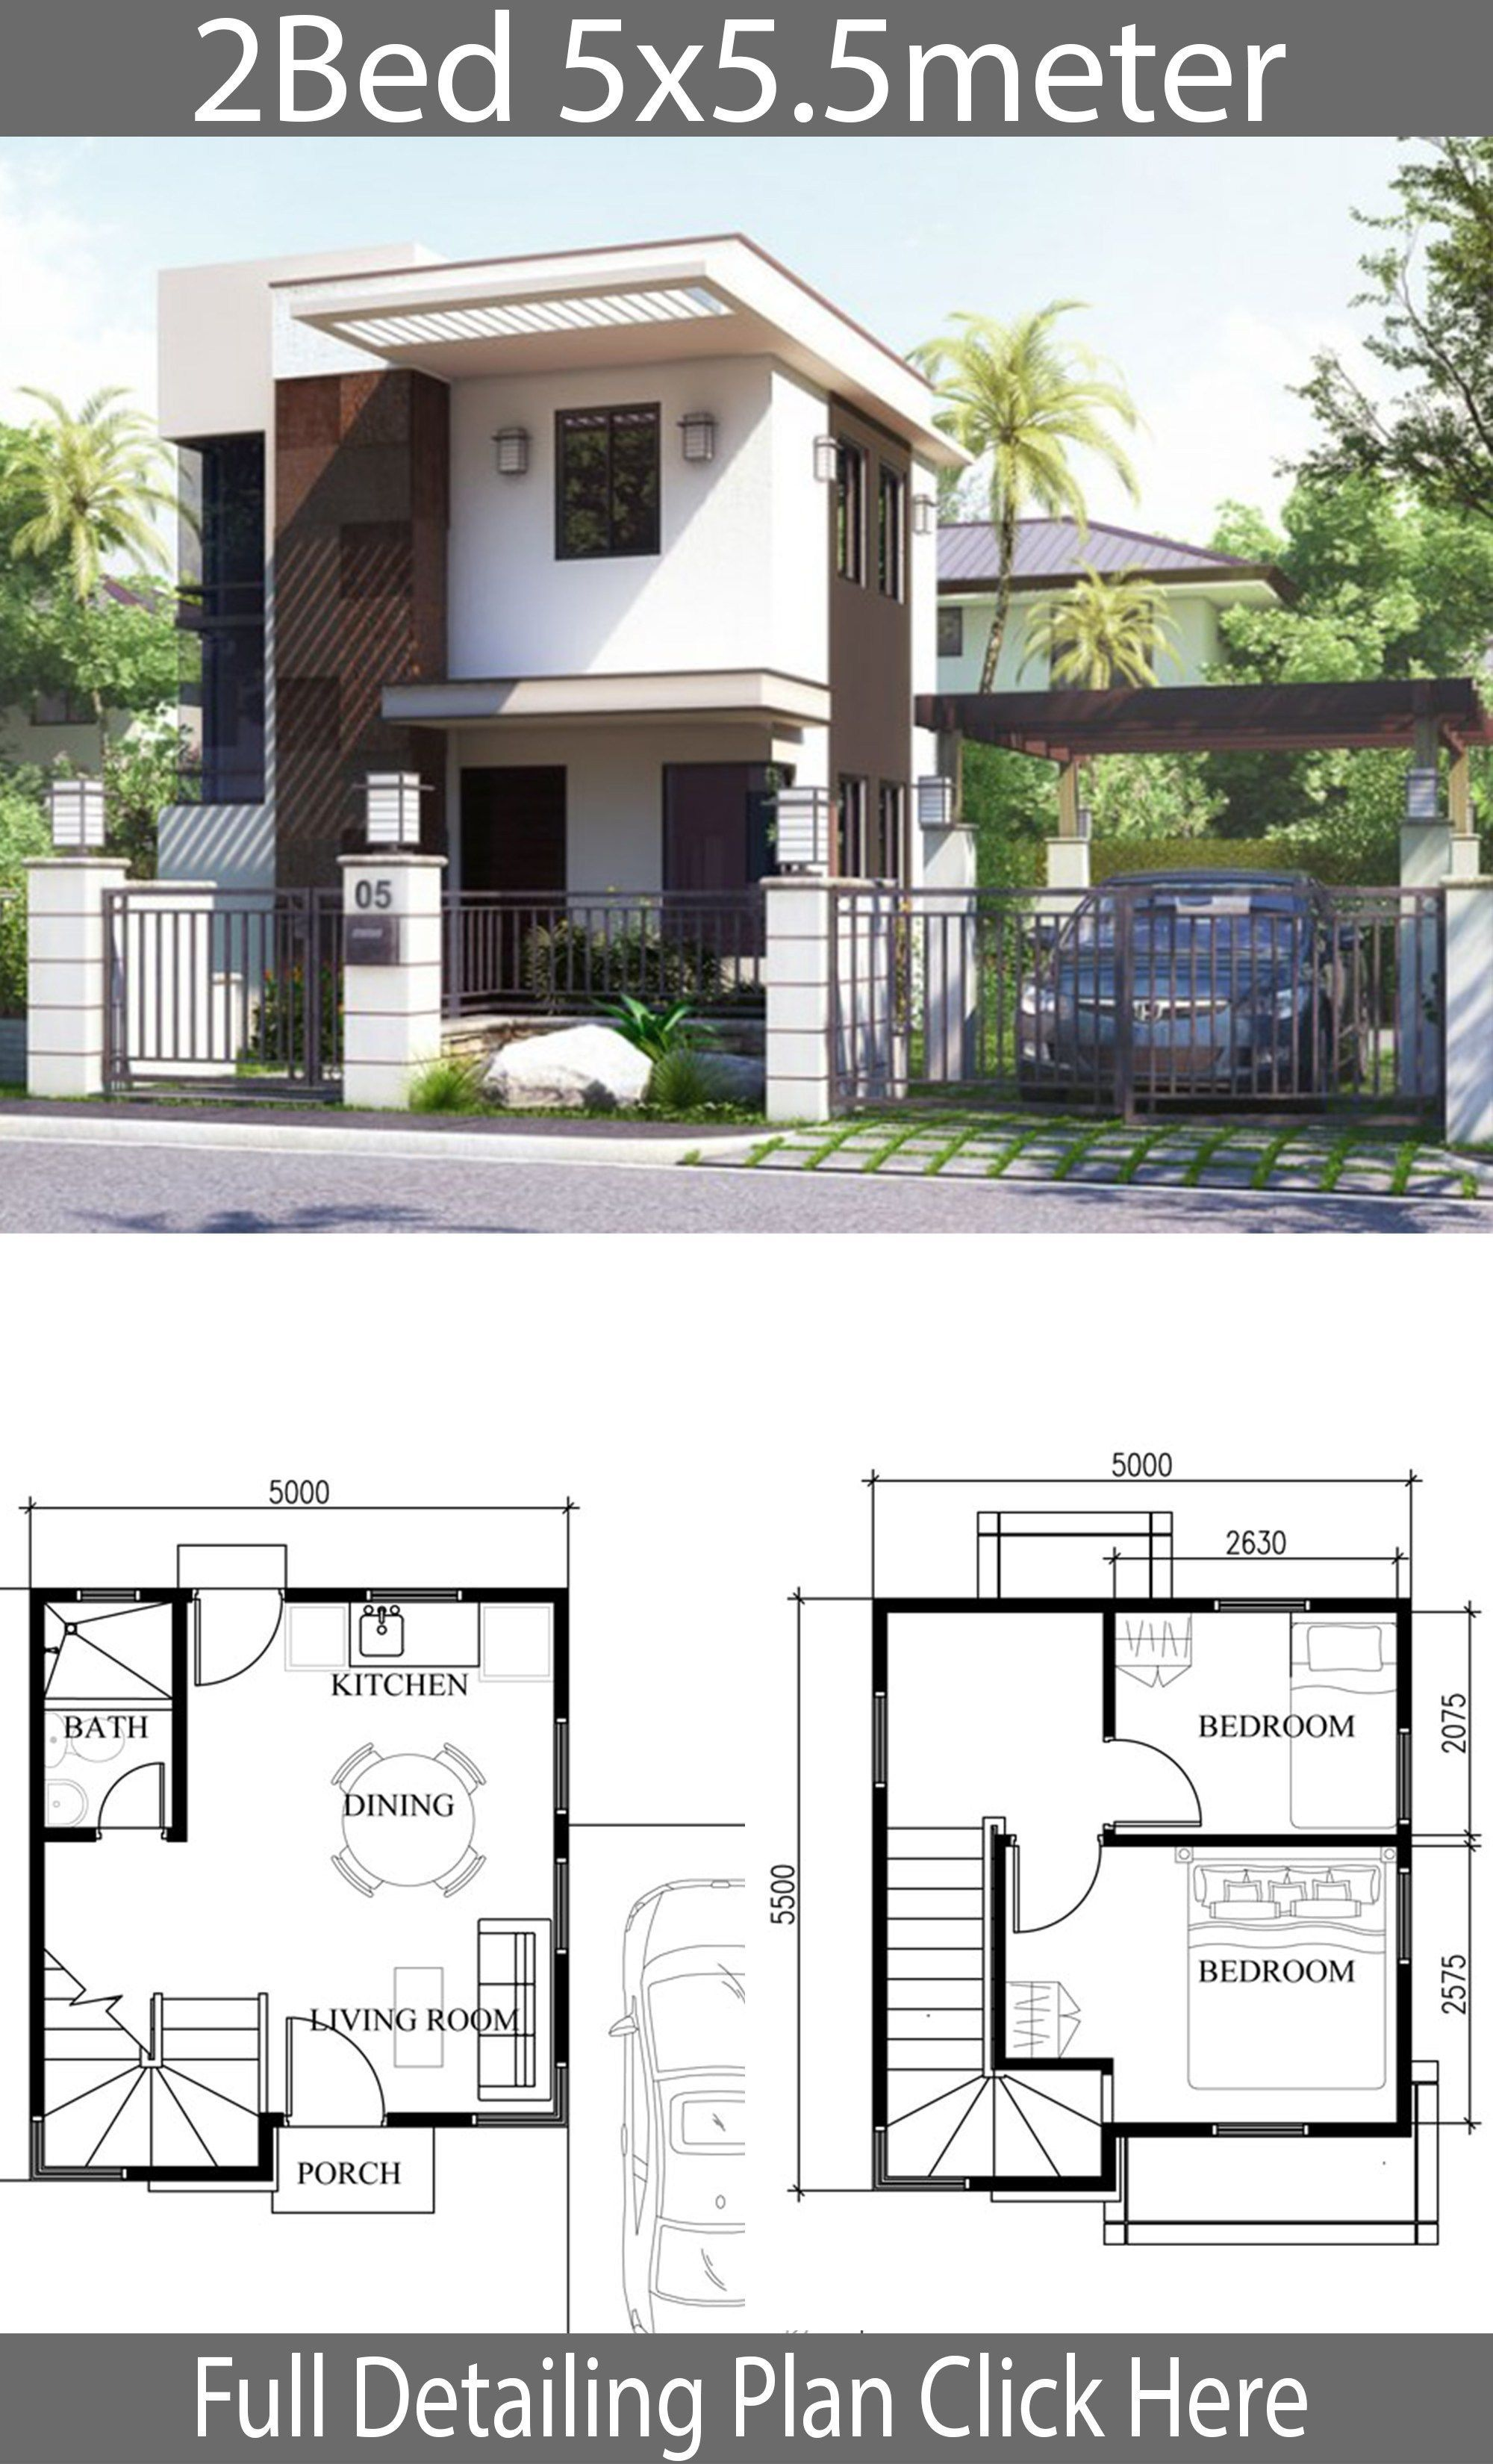 Small Home Design Plan 5x5 5m With 2 Bedrooms Home Design With Plan House Front Design Micro House Plans House Layouts